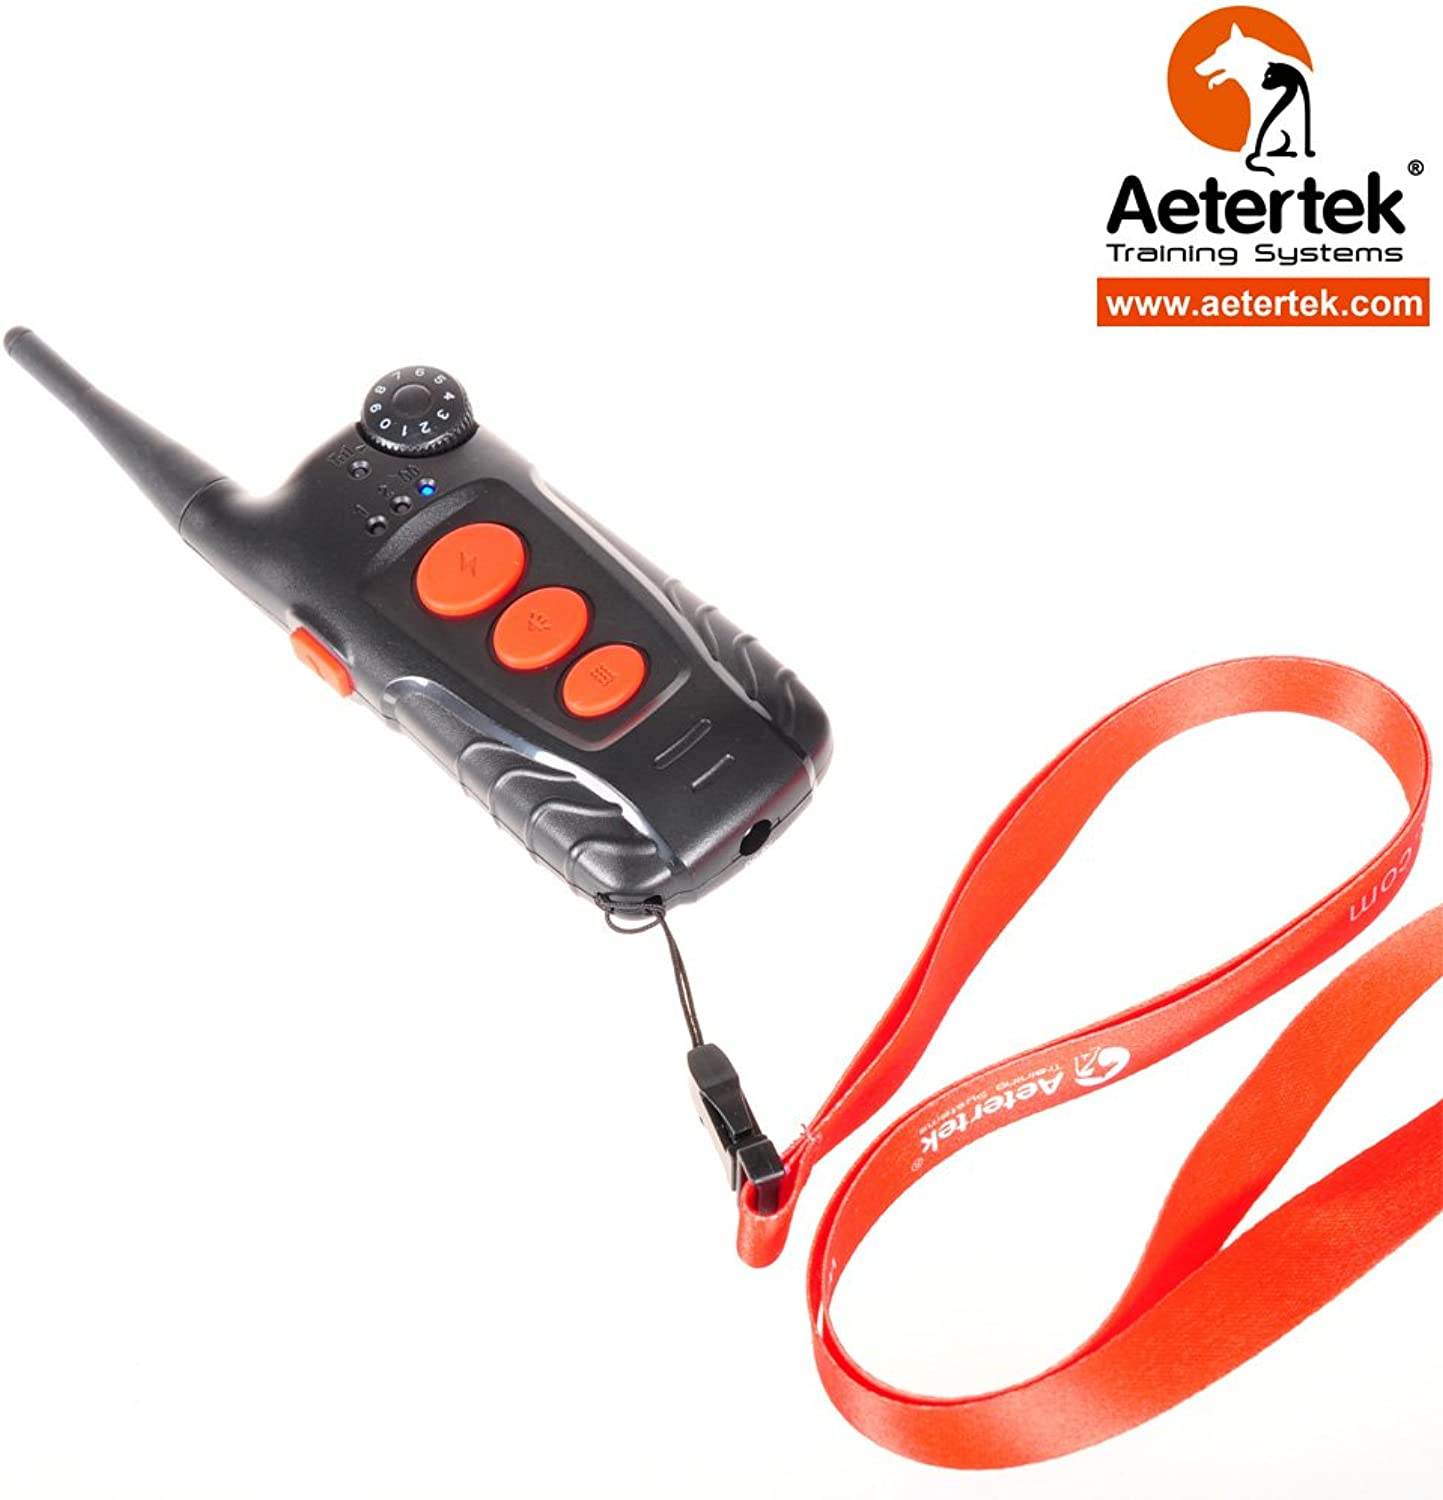 Aetertek Replacement Parts Remote for Waterproof Rechargeable Trainer Dog Training Shock Collar System AT218C (Replacement 218C Remote)